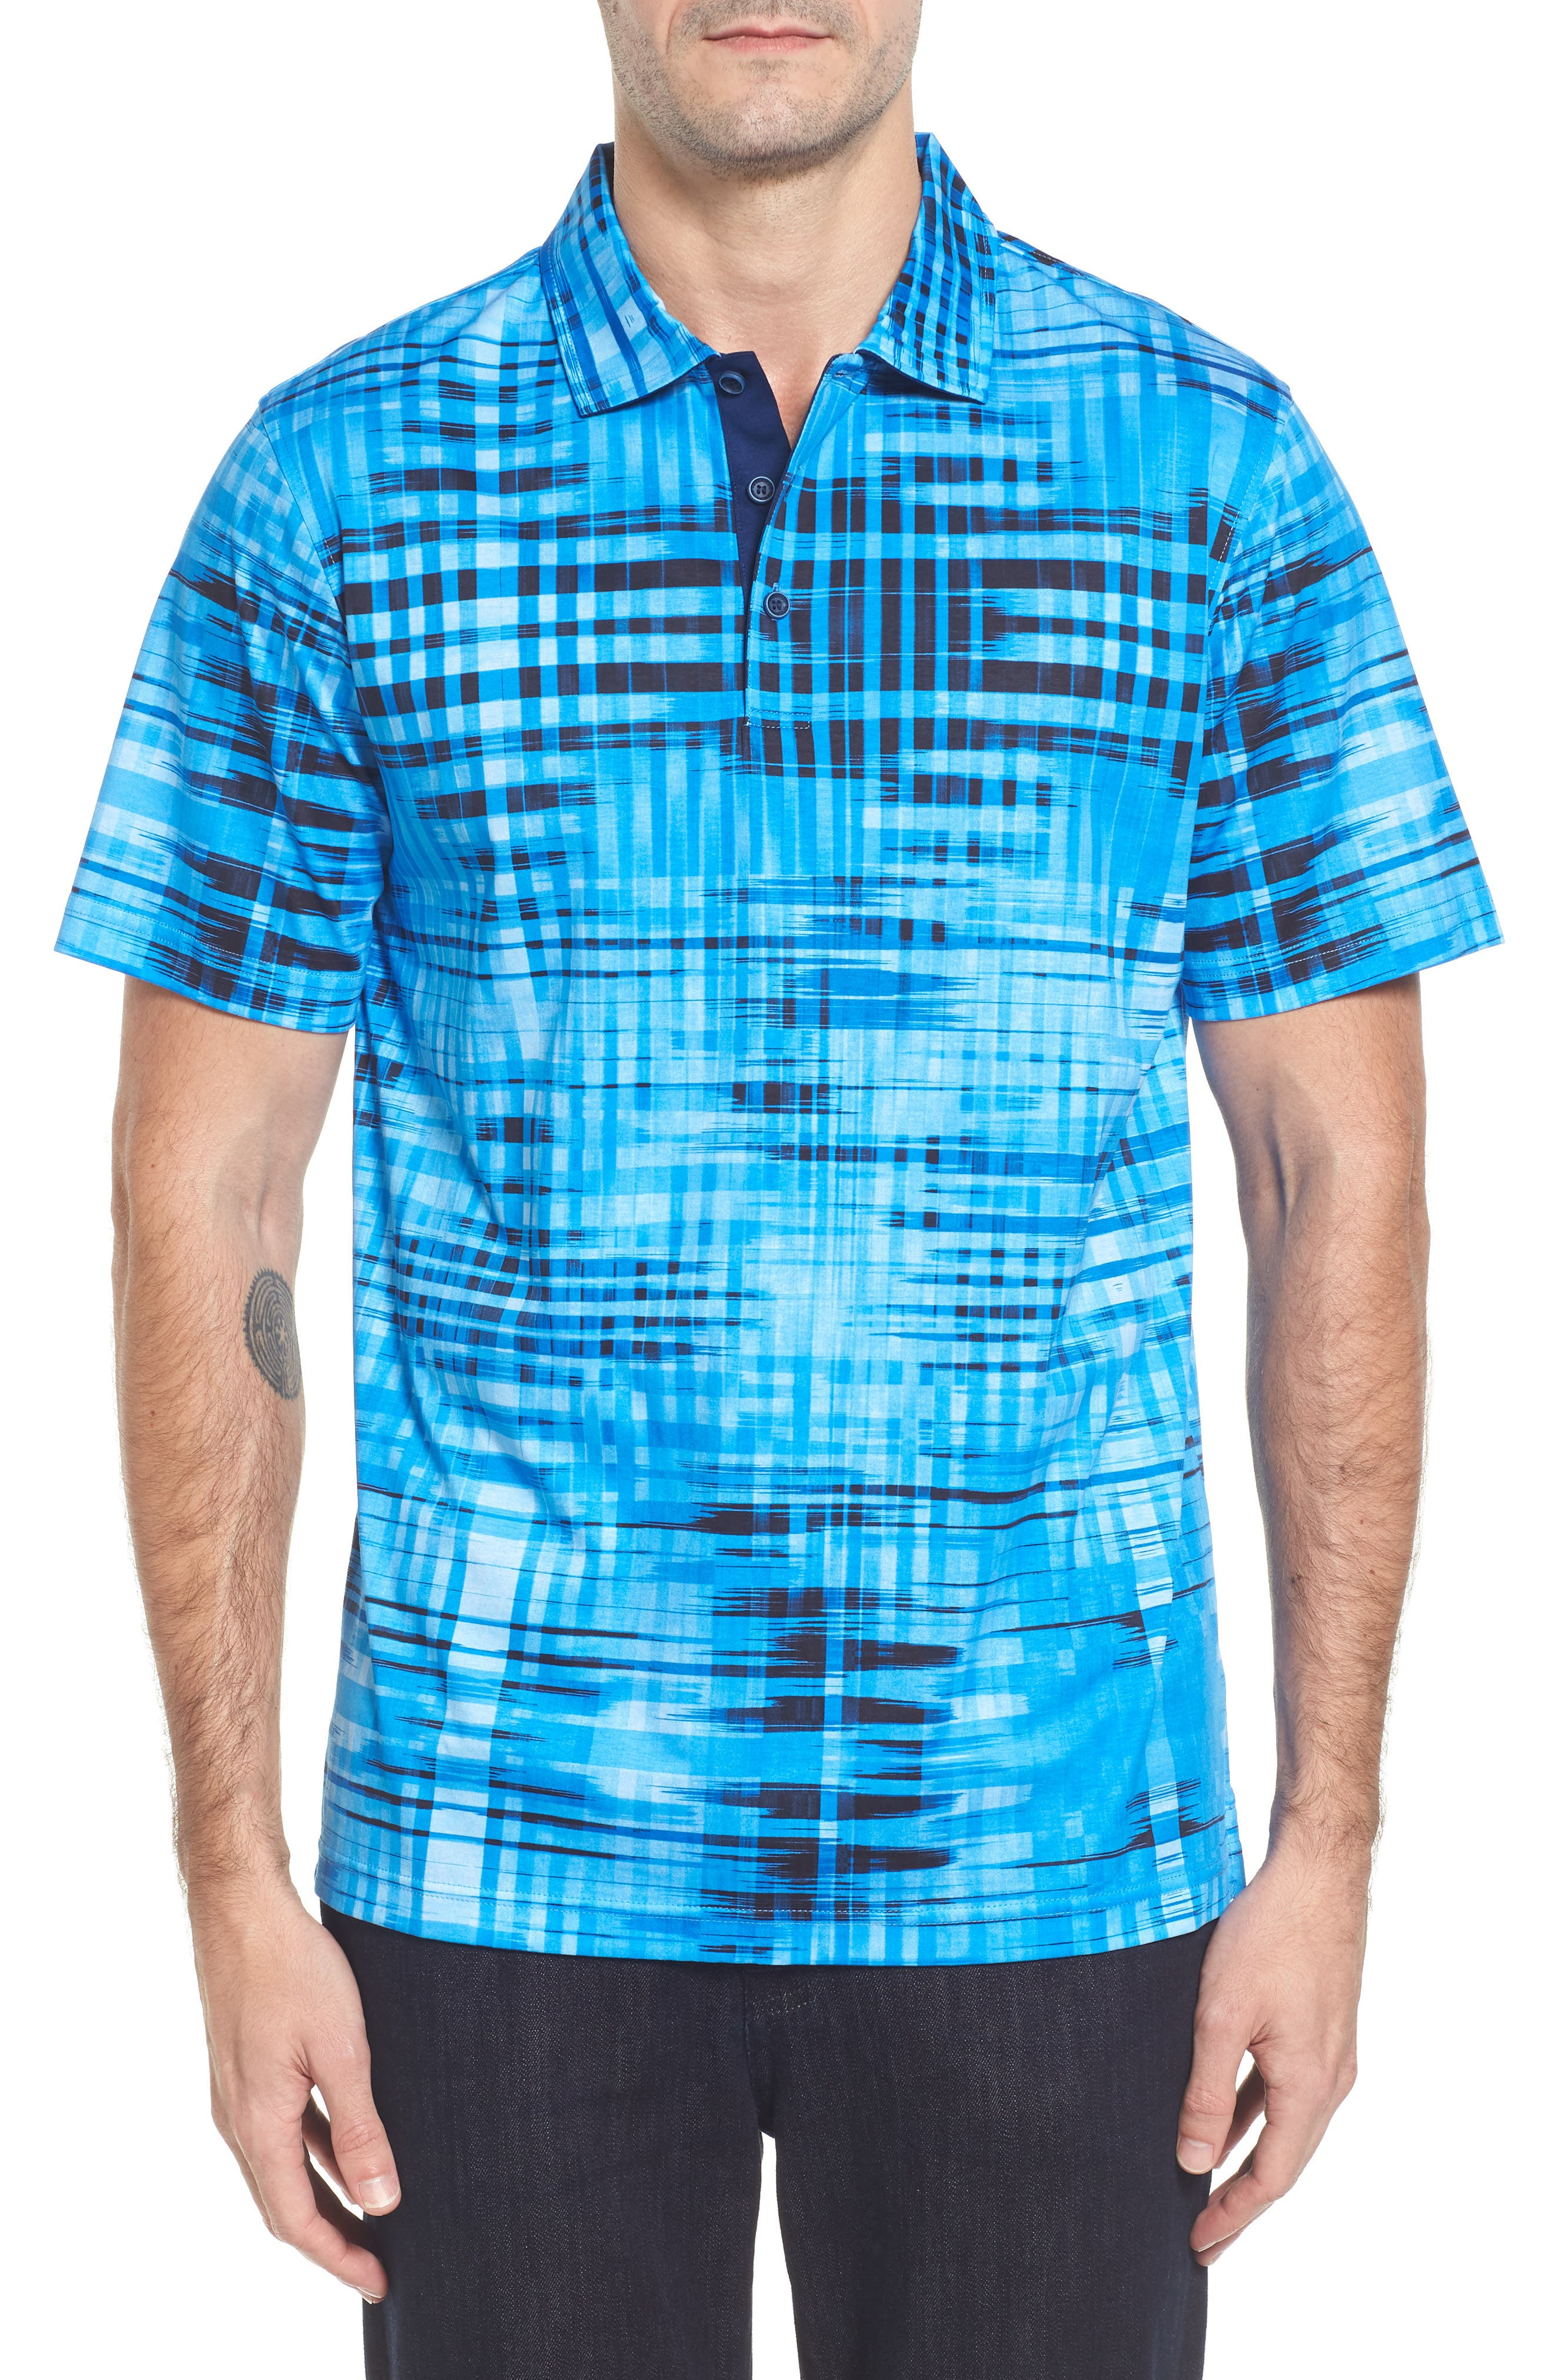 Alternate Image 1 Selected - Bugatchi Classic Fit Print Polo